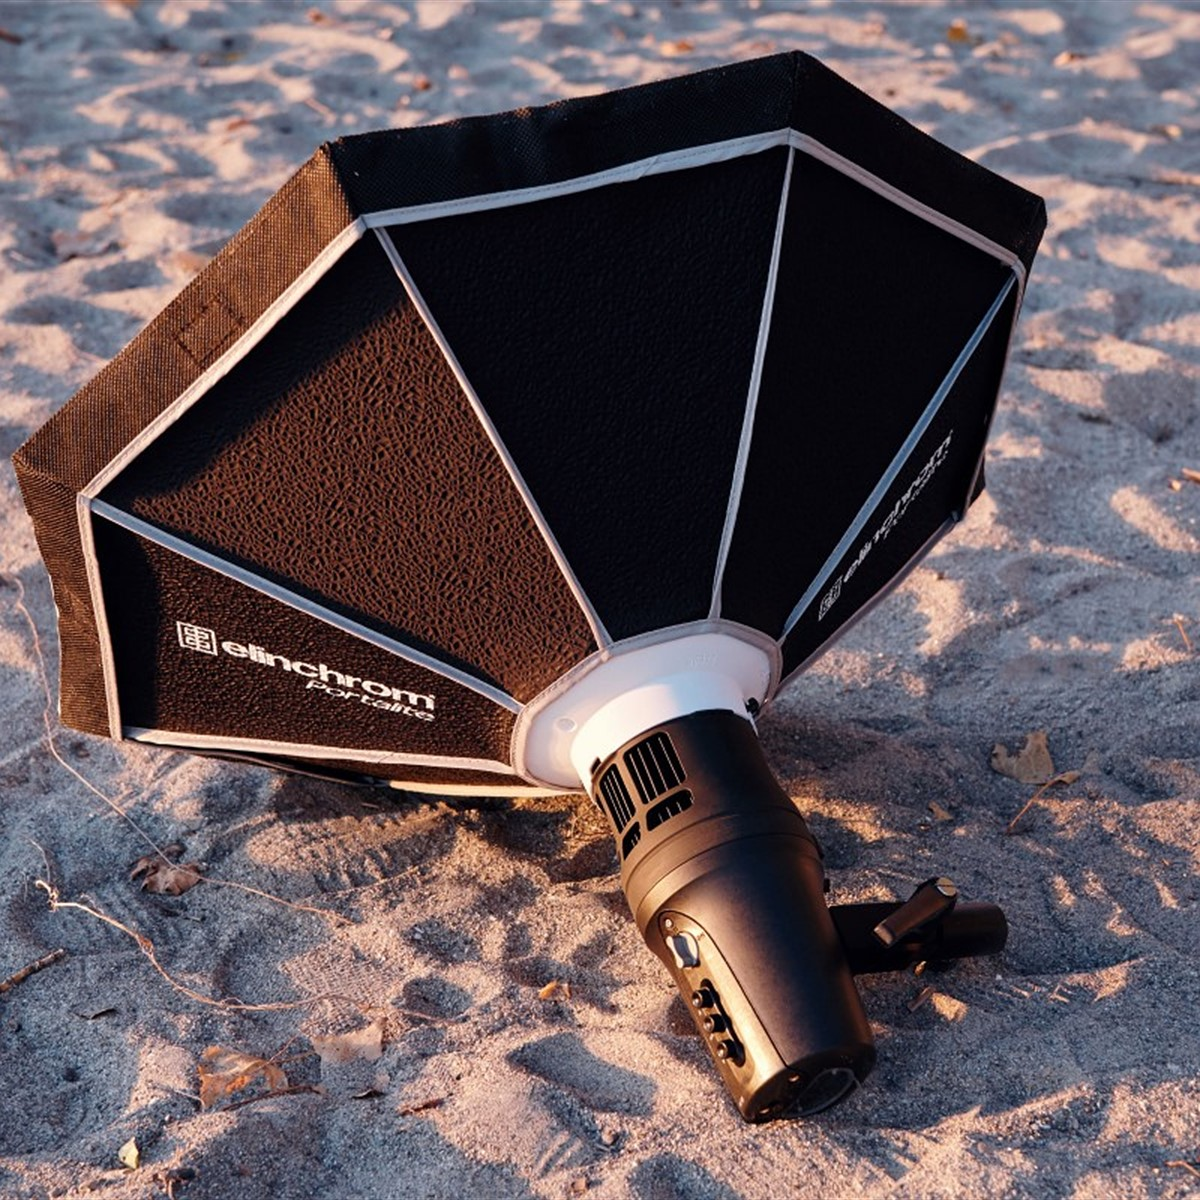 Elinchrom launches ELM8 portable continuous LED light from Light